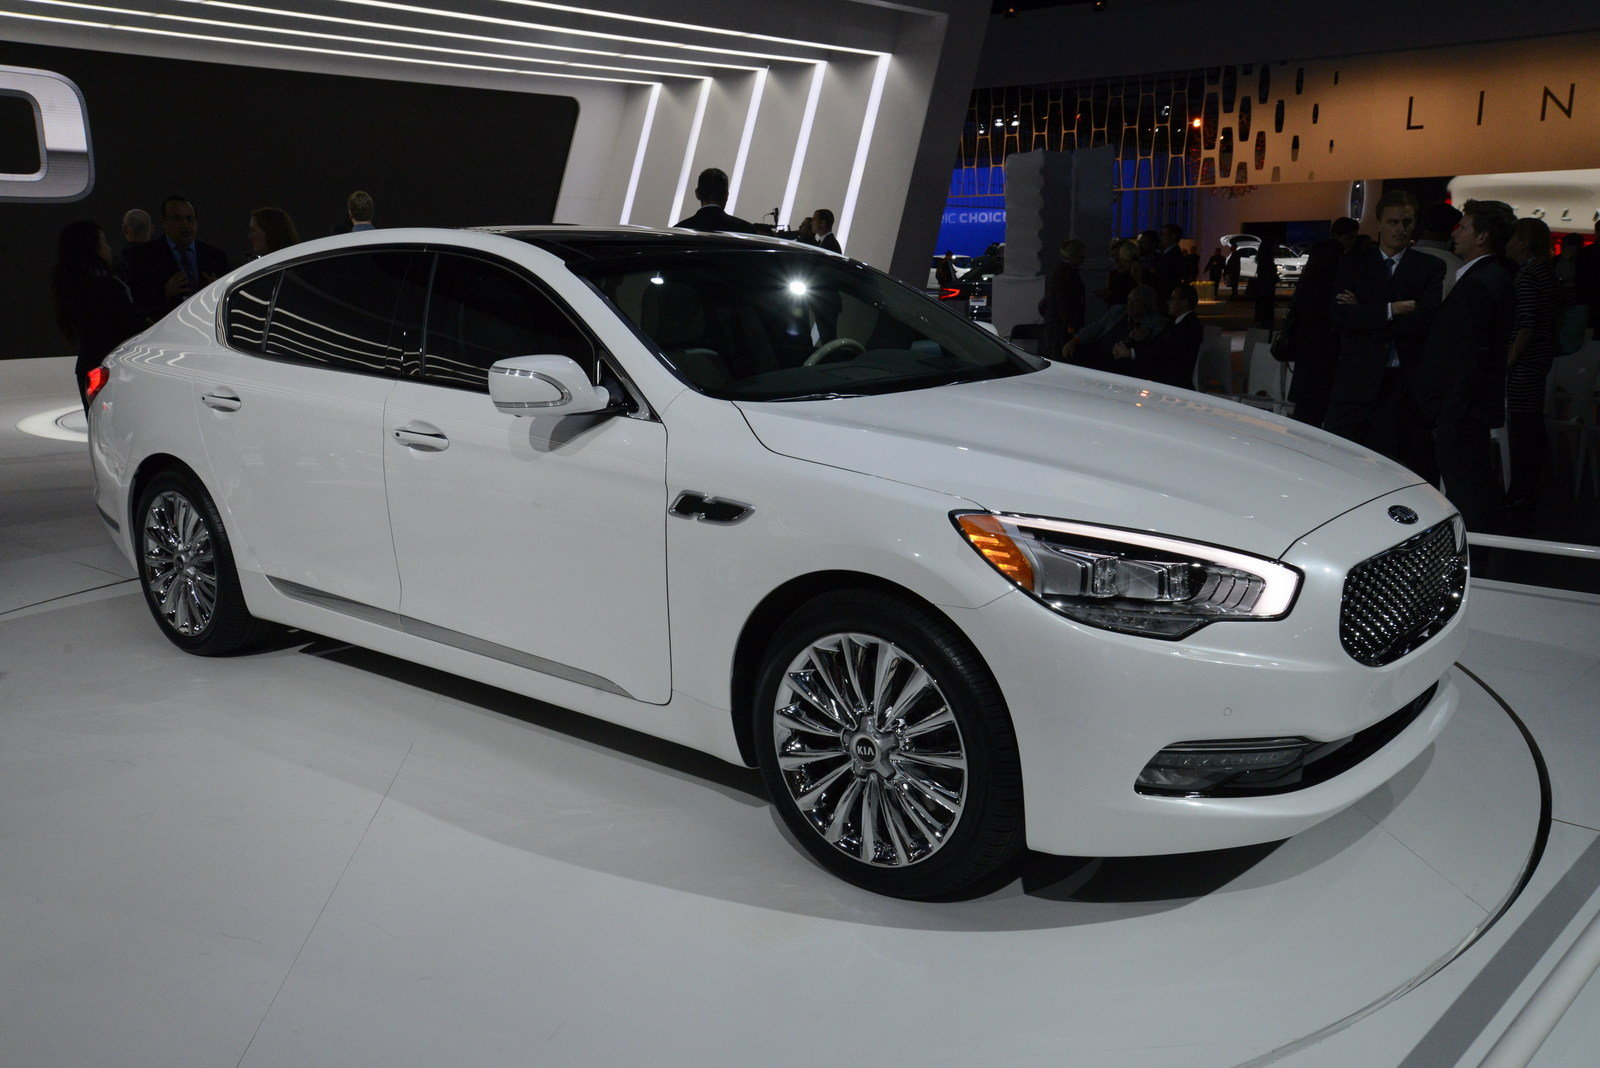 K900 For Sale >> 2015 Kia K900 - Picture 533557 | car review @ Top Speed